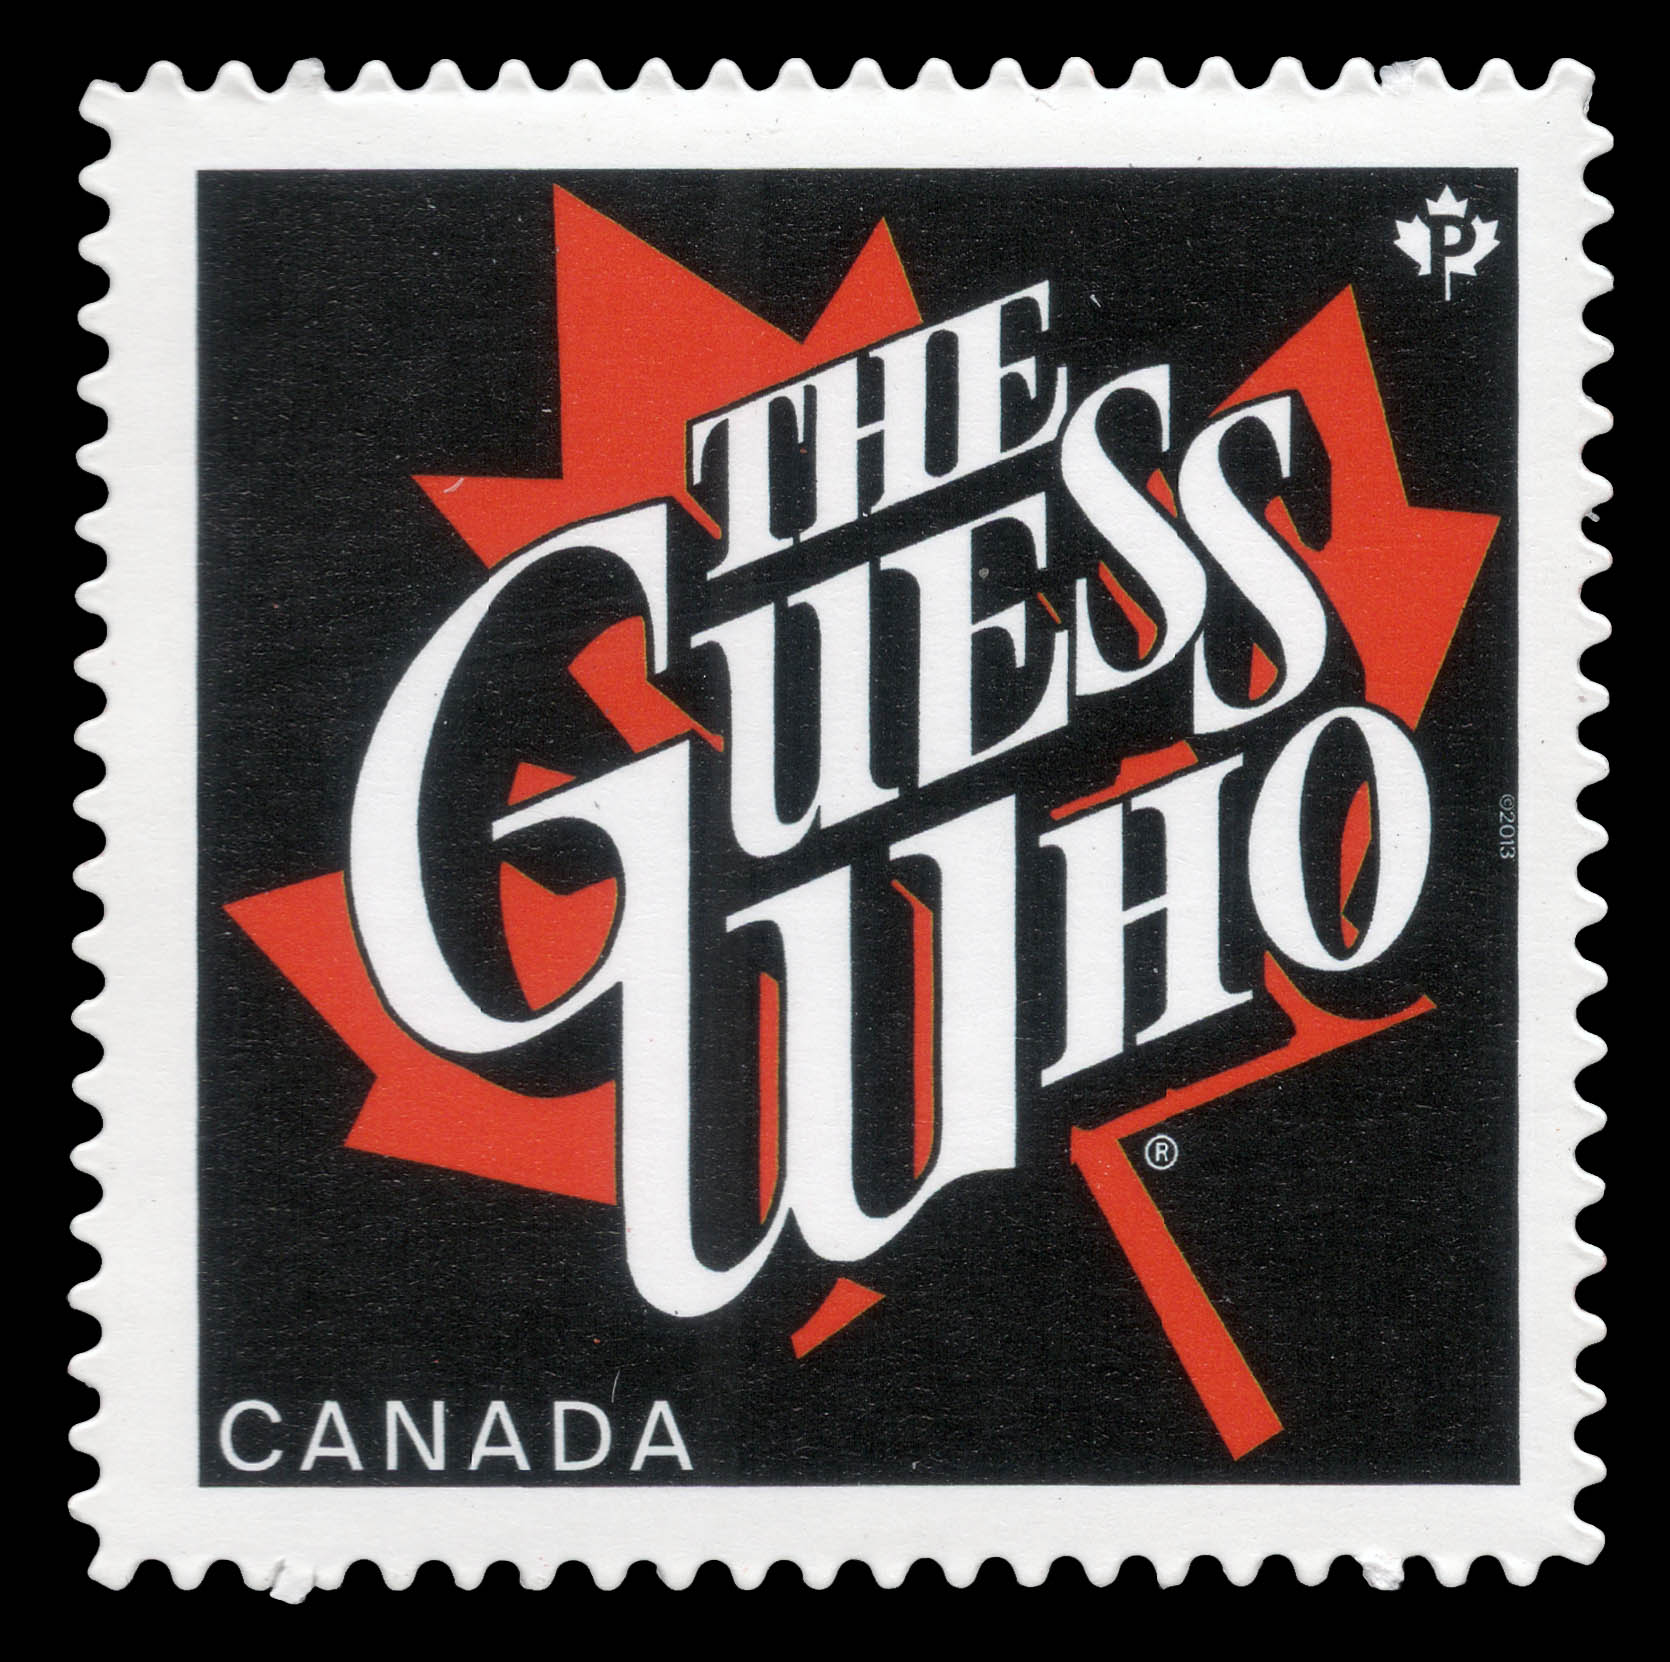 The Guess Who Canada Postage Stamp